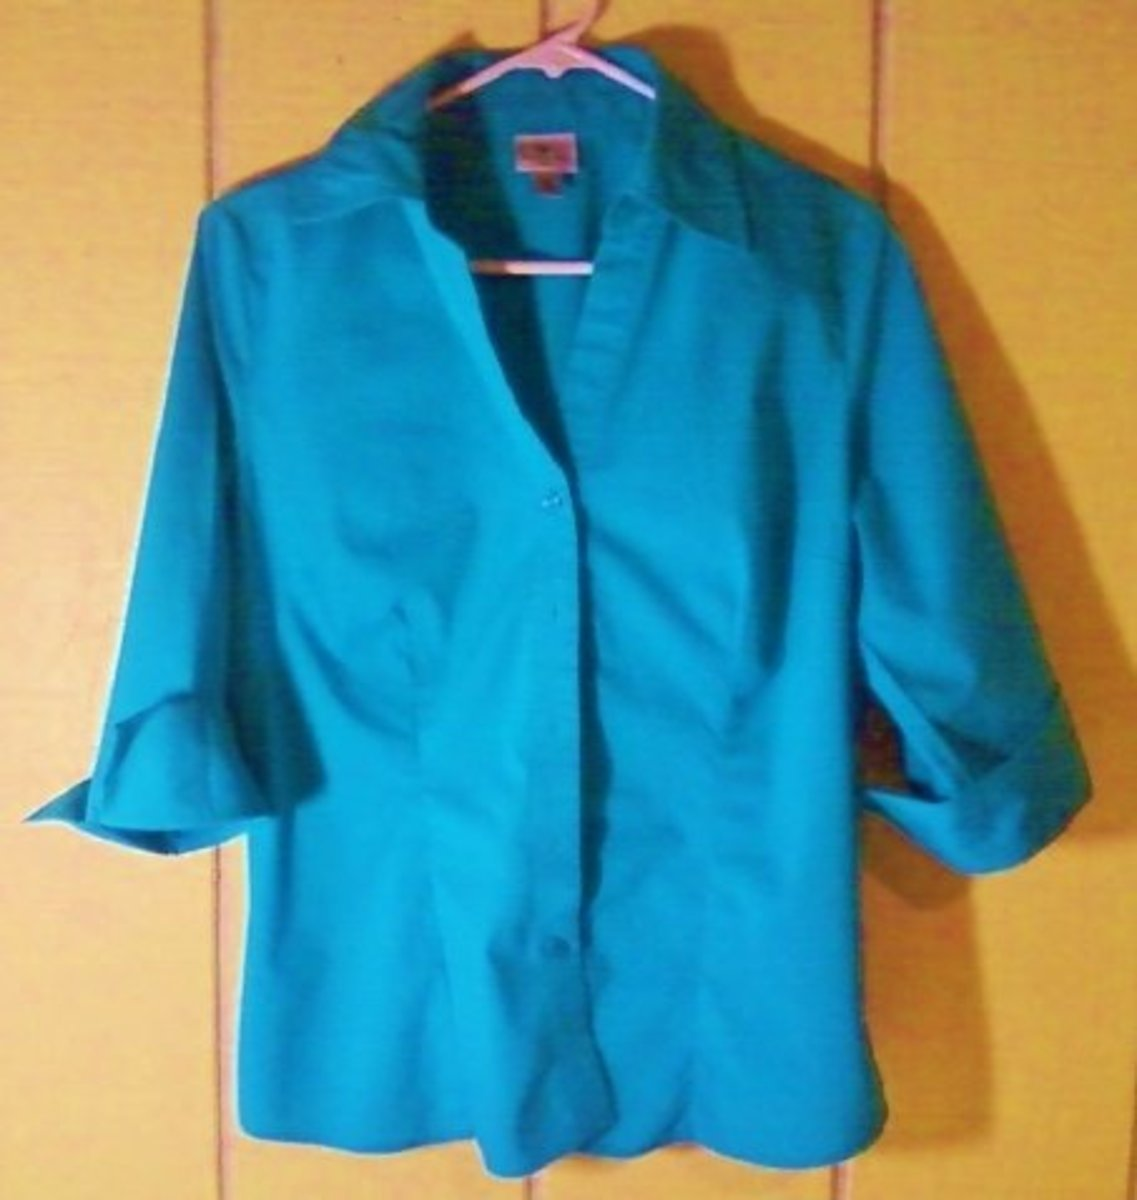 The Finished Blouse, Cuffs Turned